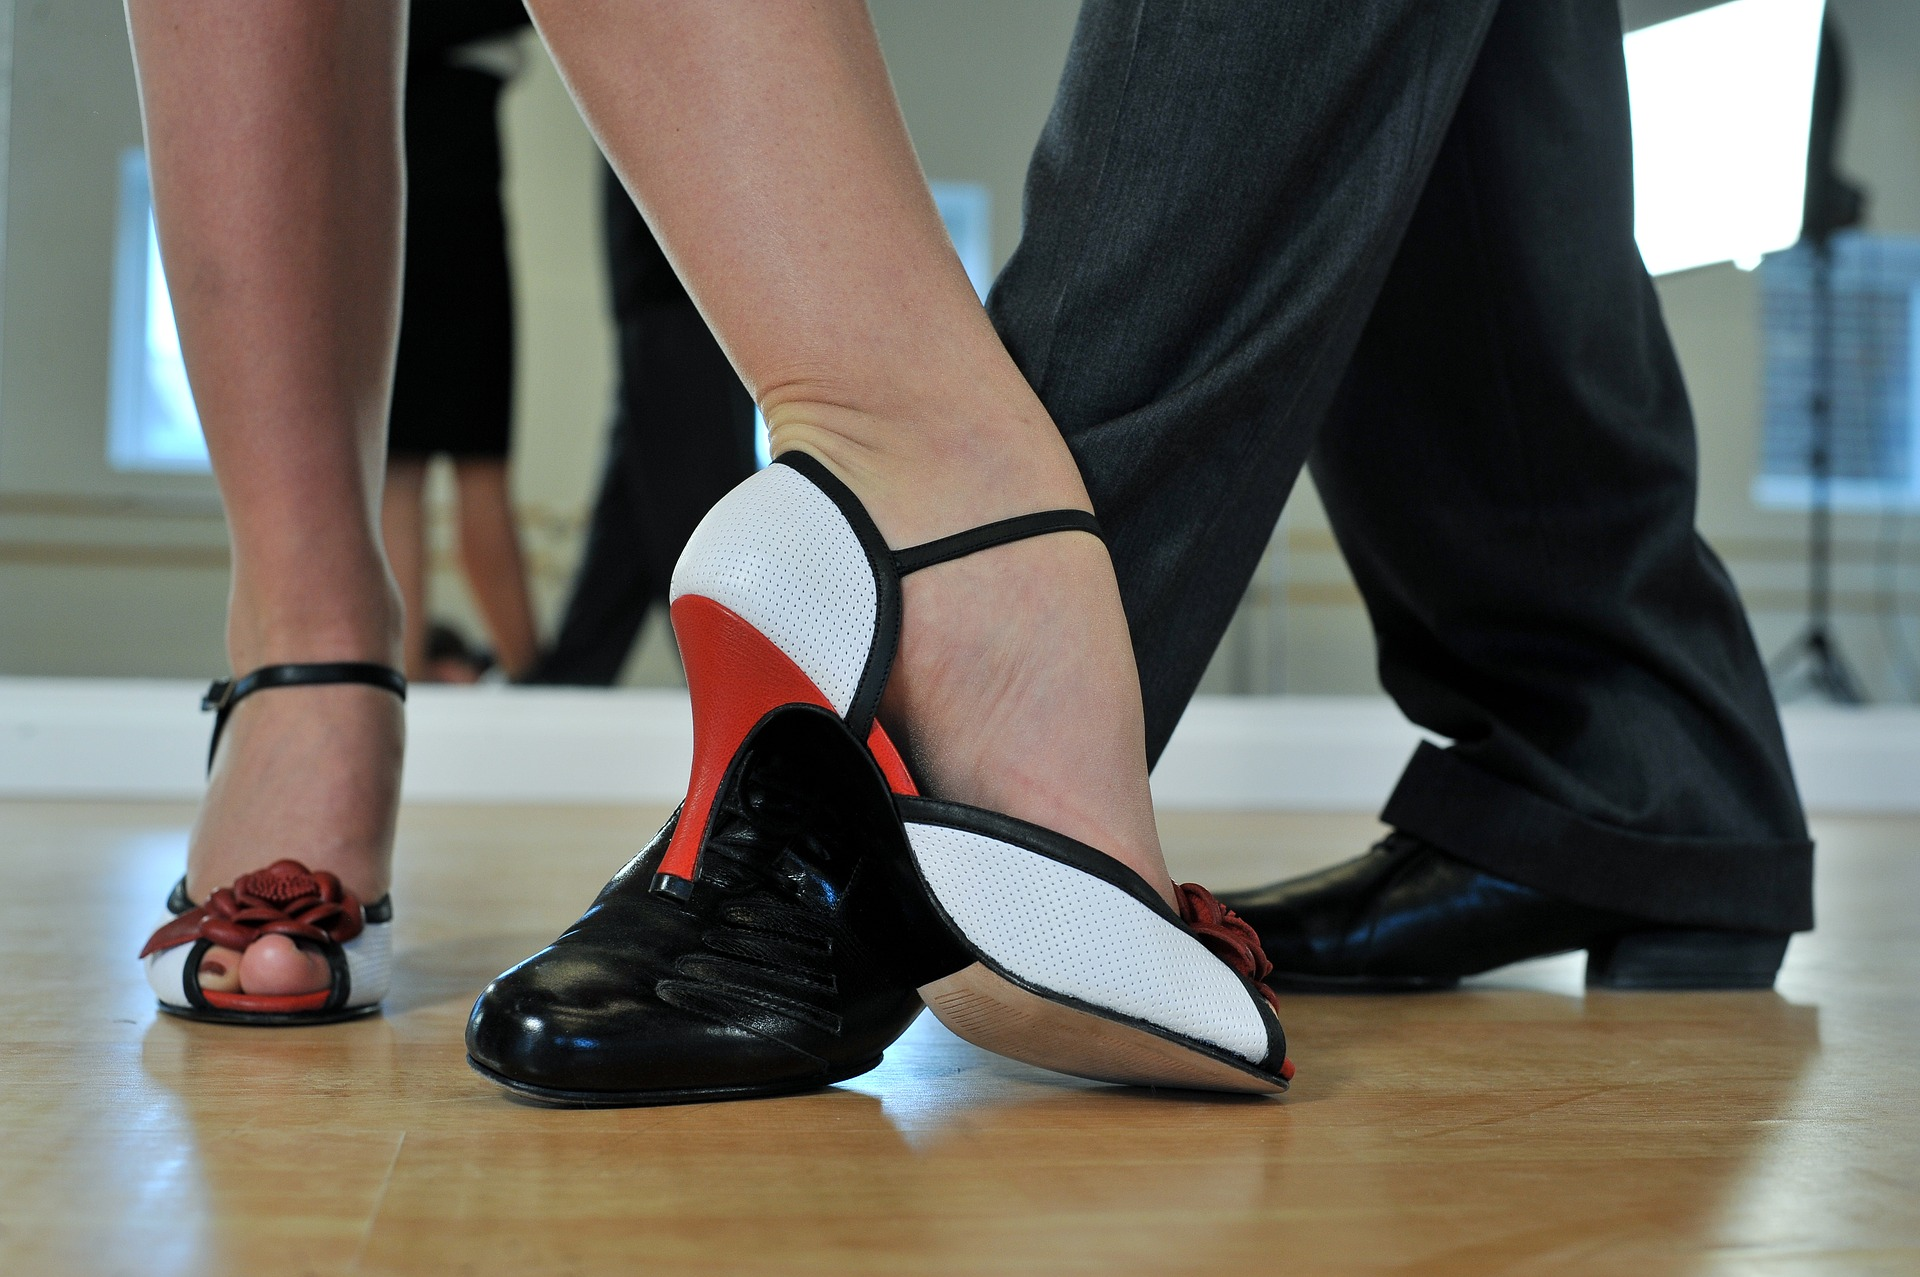 Dance classes at the workplace